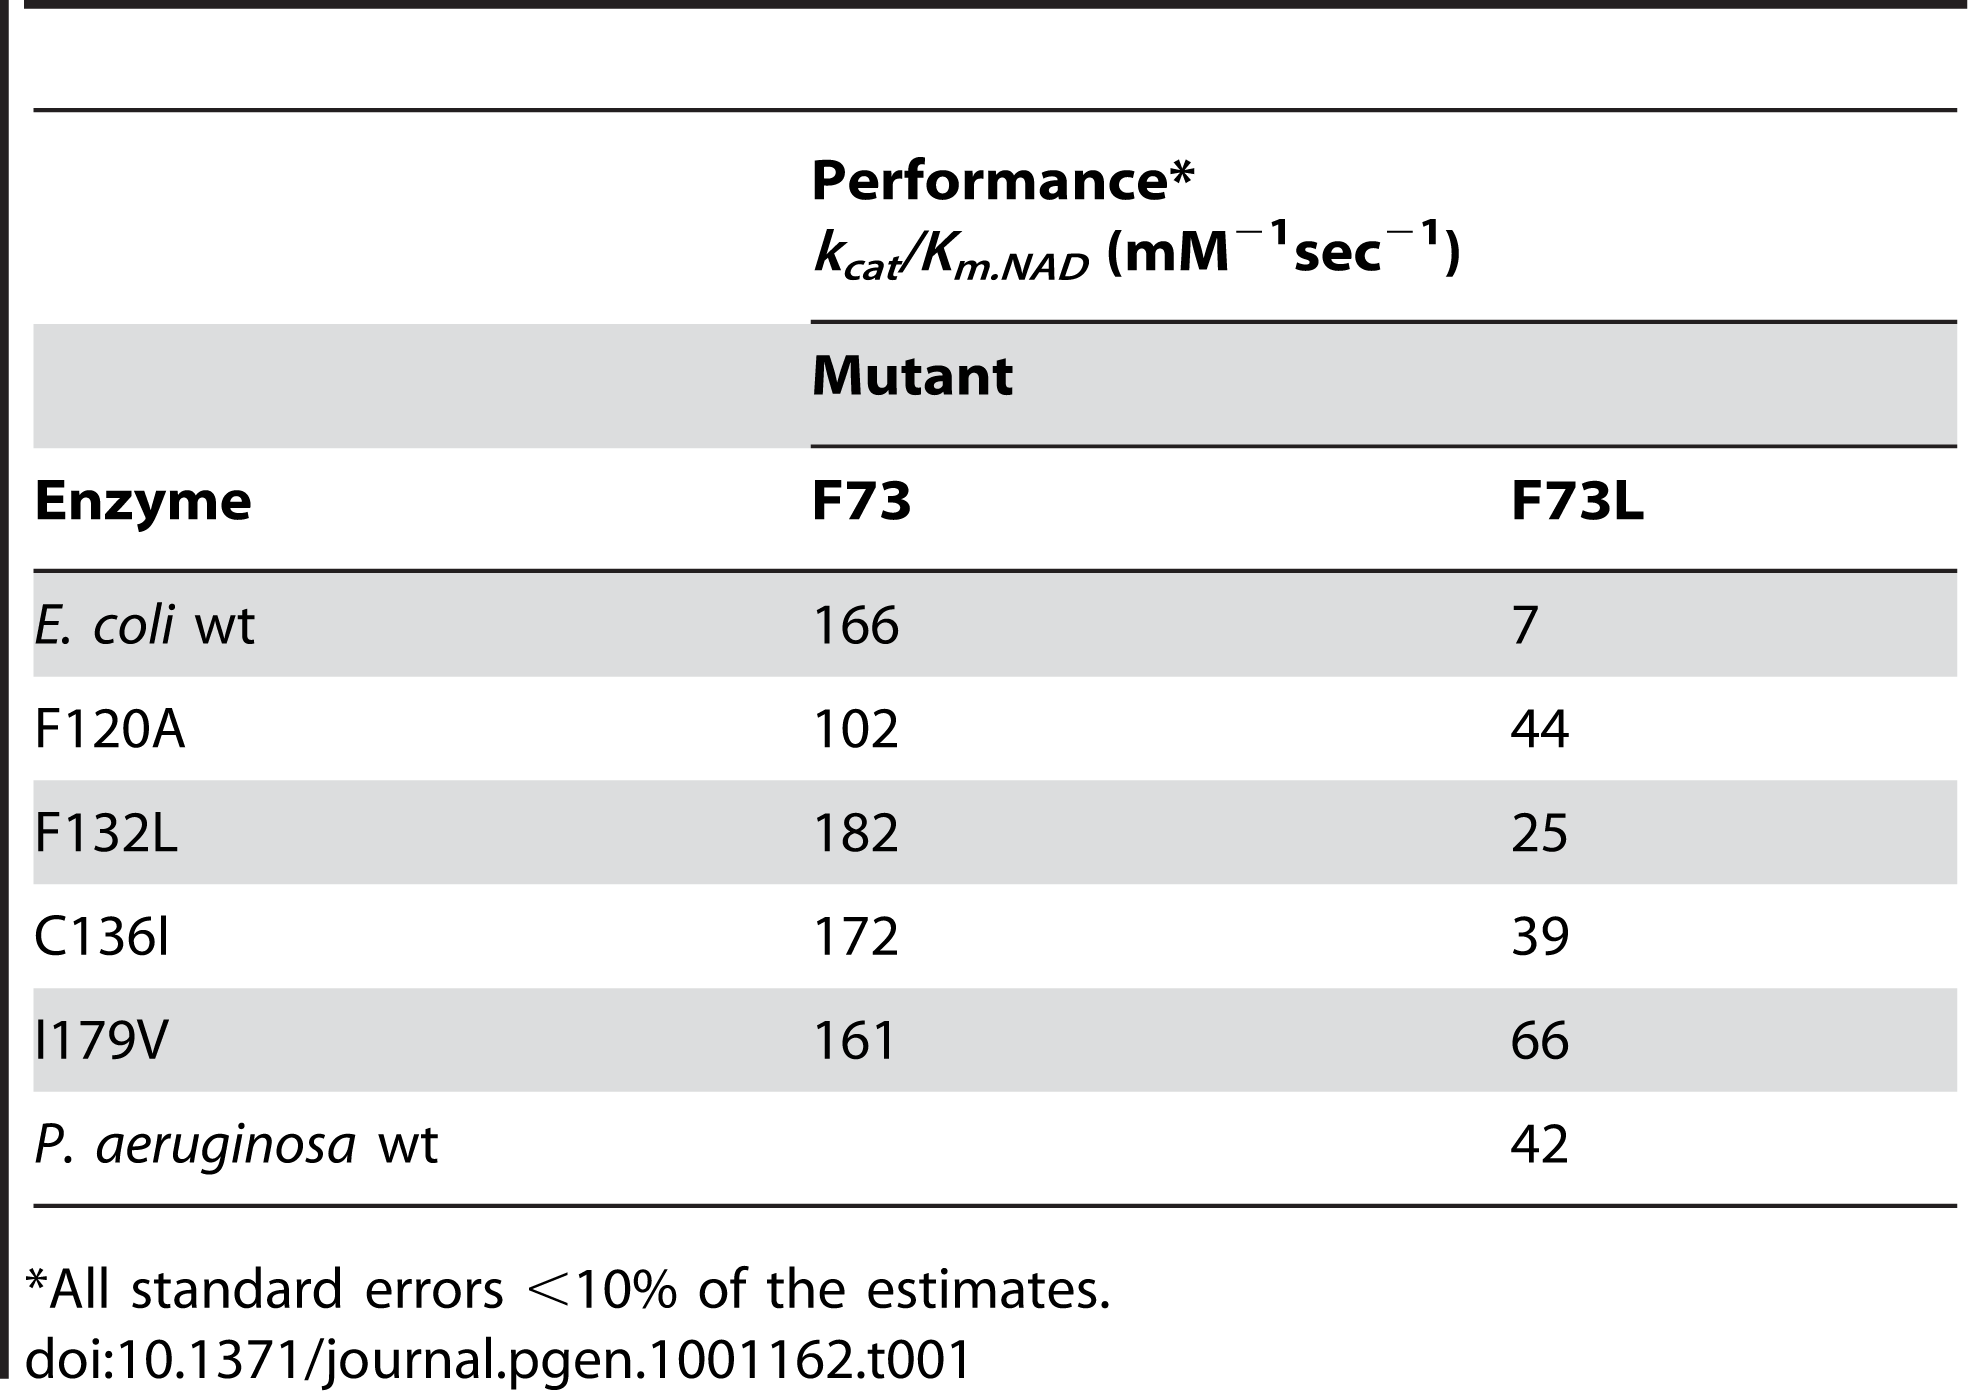 Performance of mutants towards NAD.